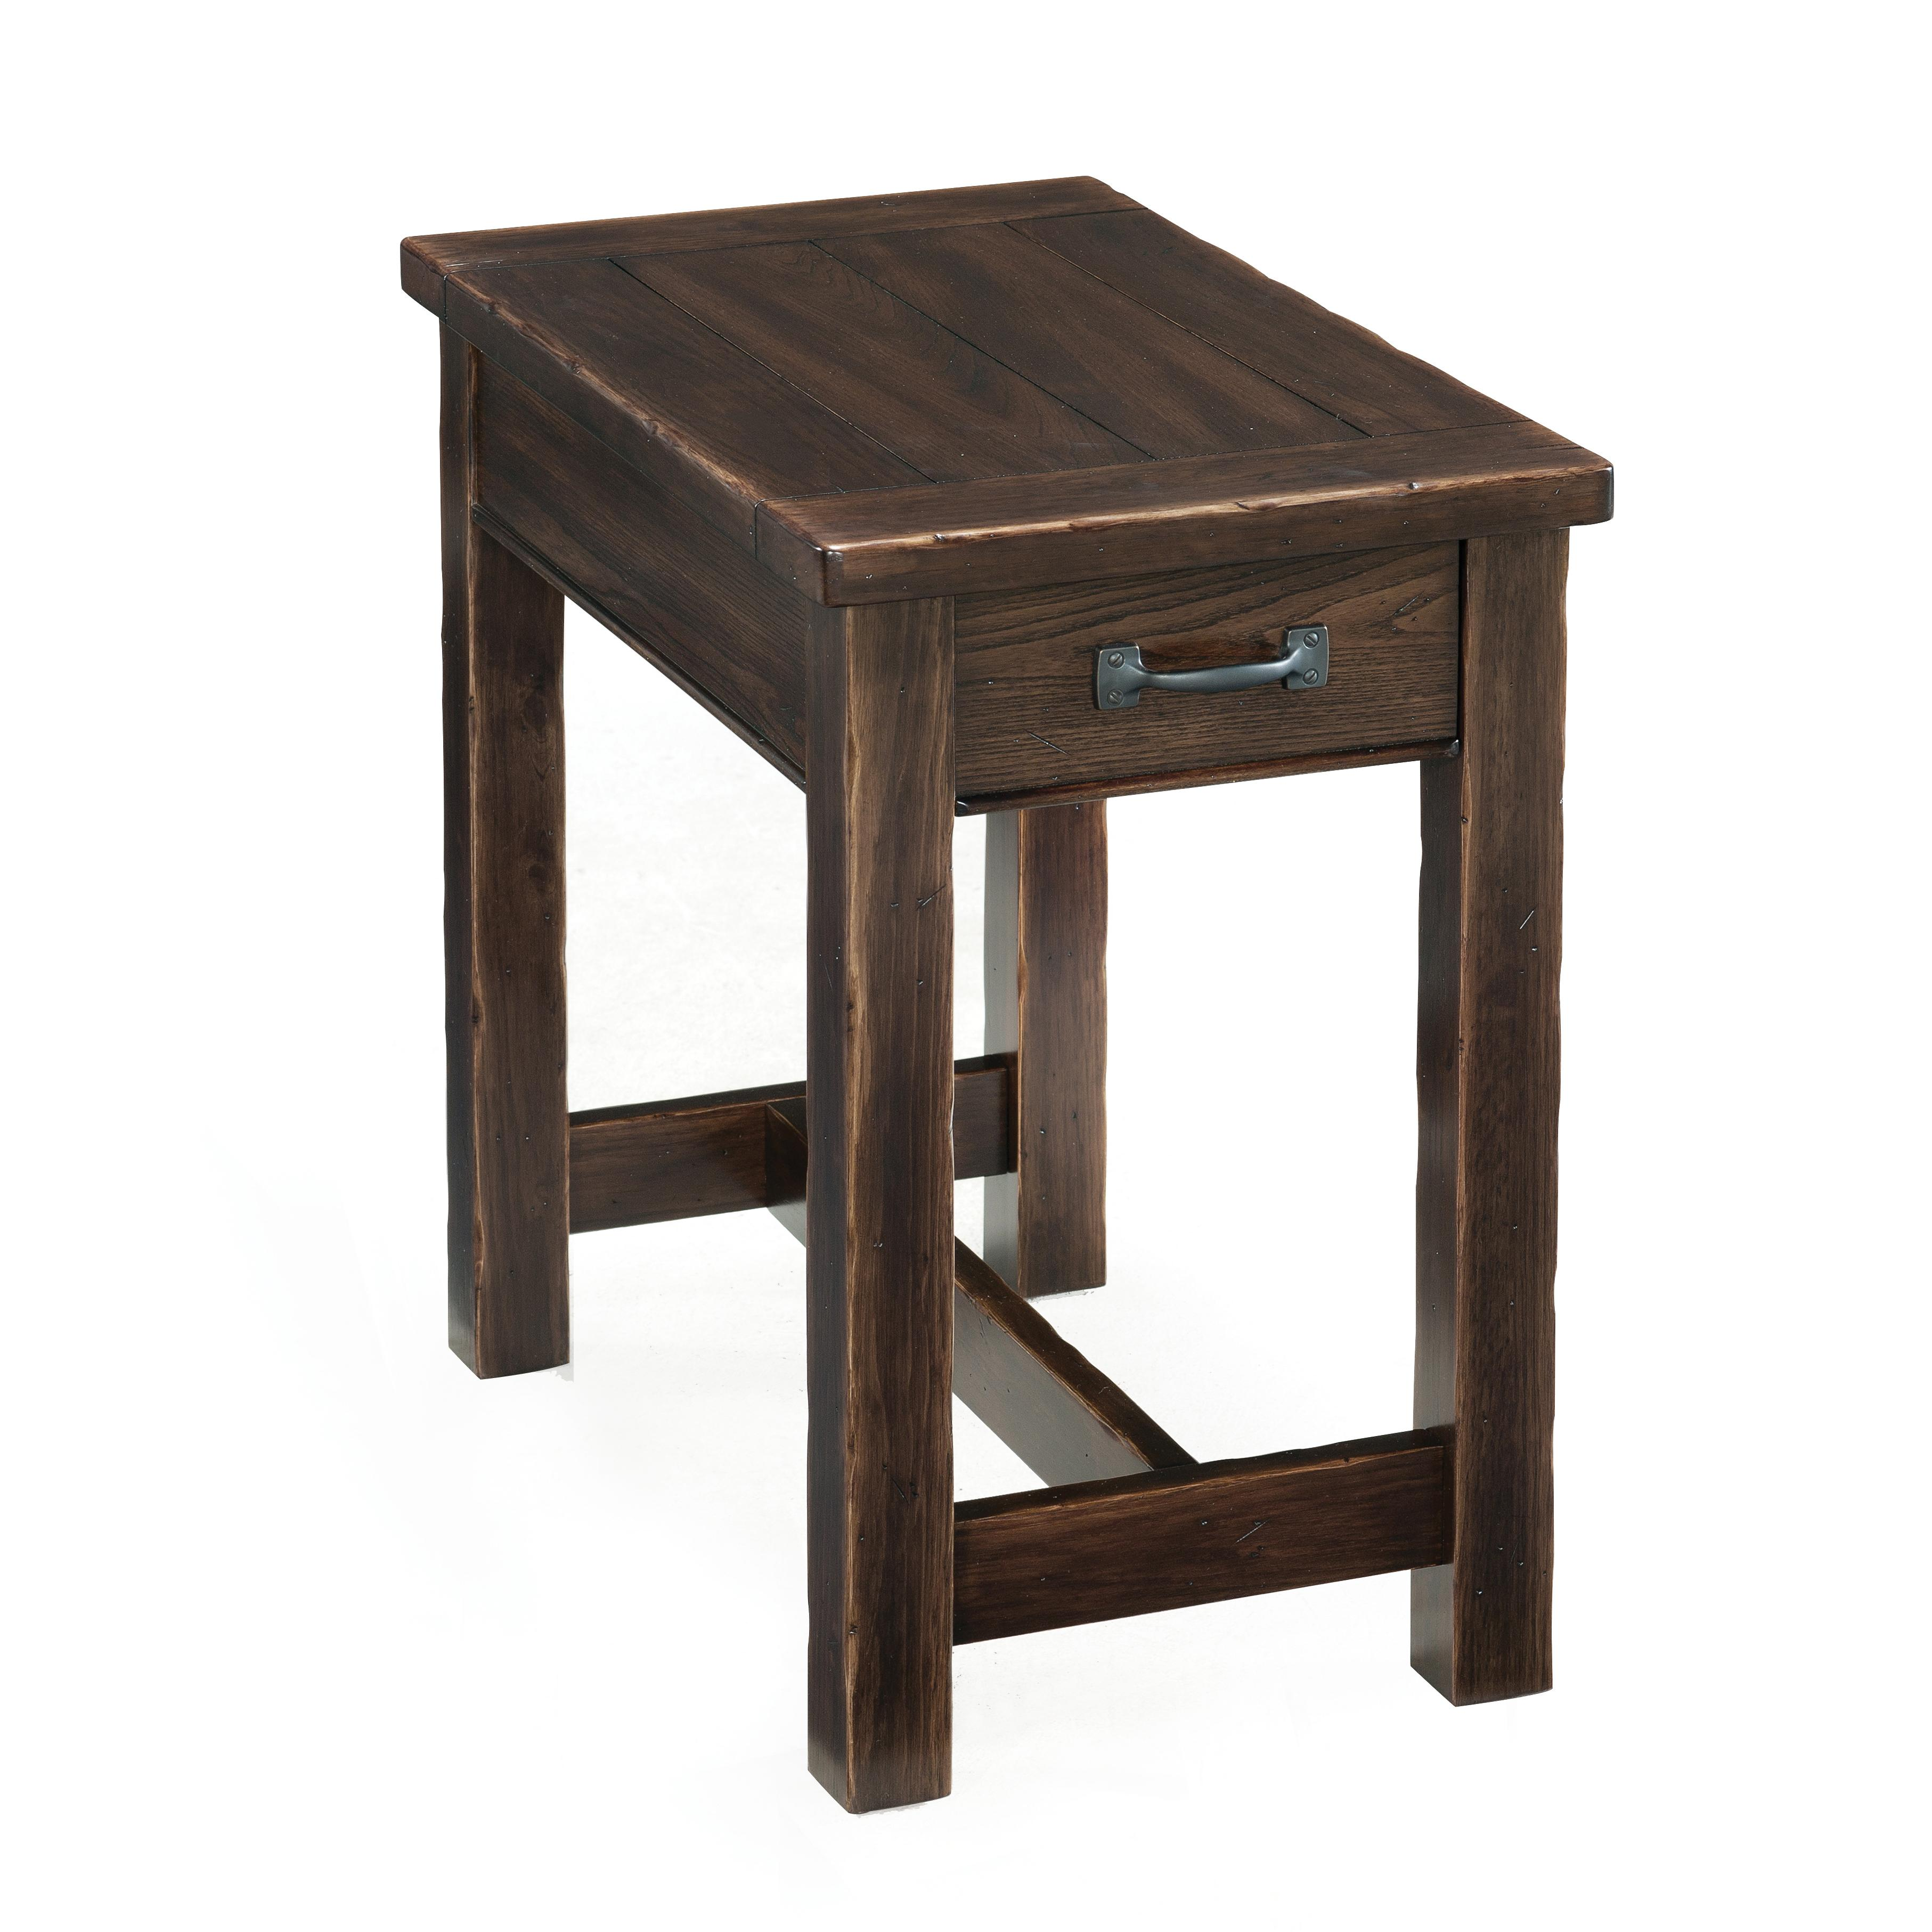 rustic rectangular chairside table with drawer by